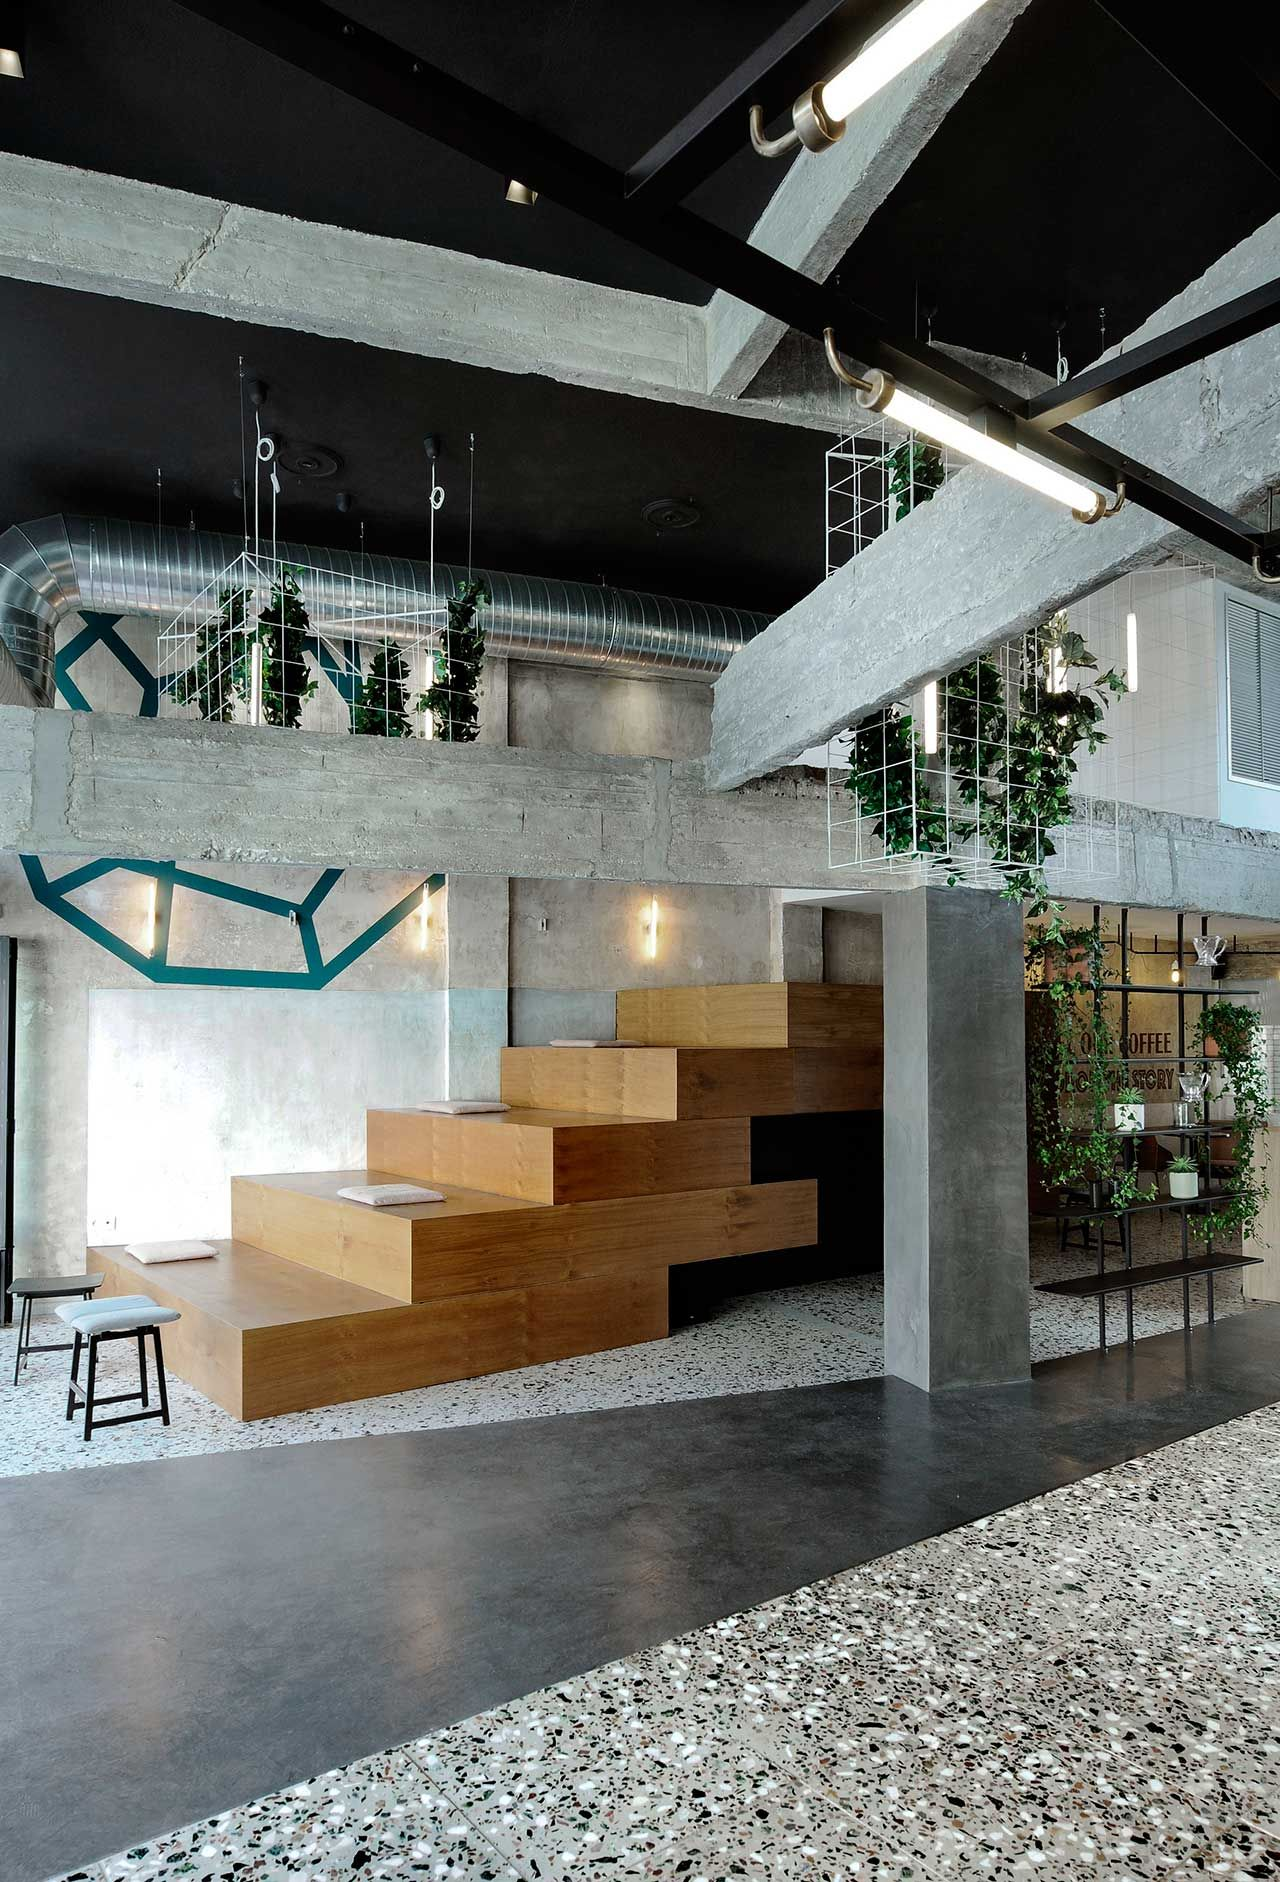 The Welcoming Urban Aesthetic of Black Drop in Kavala by ...